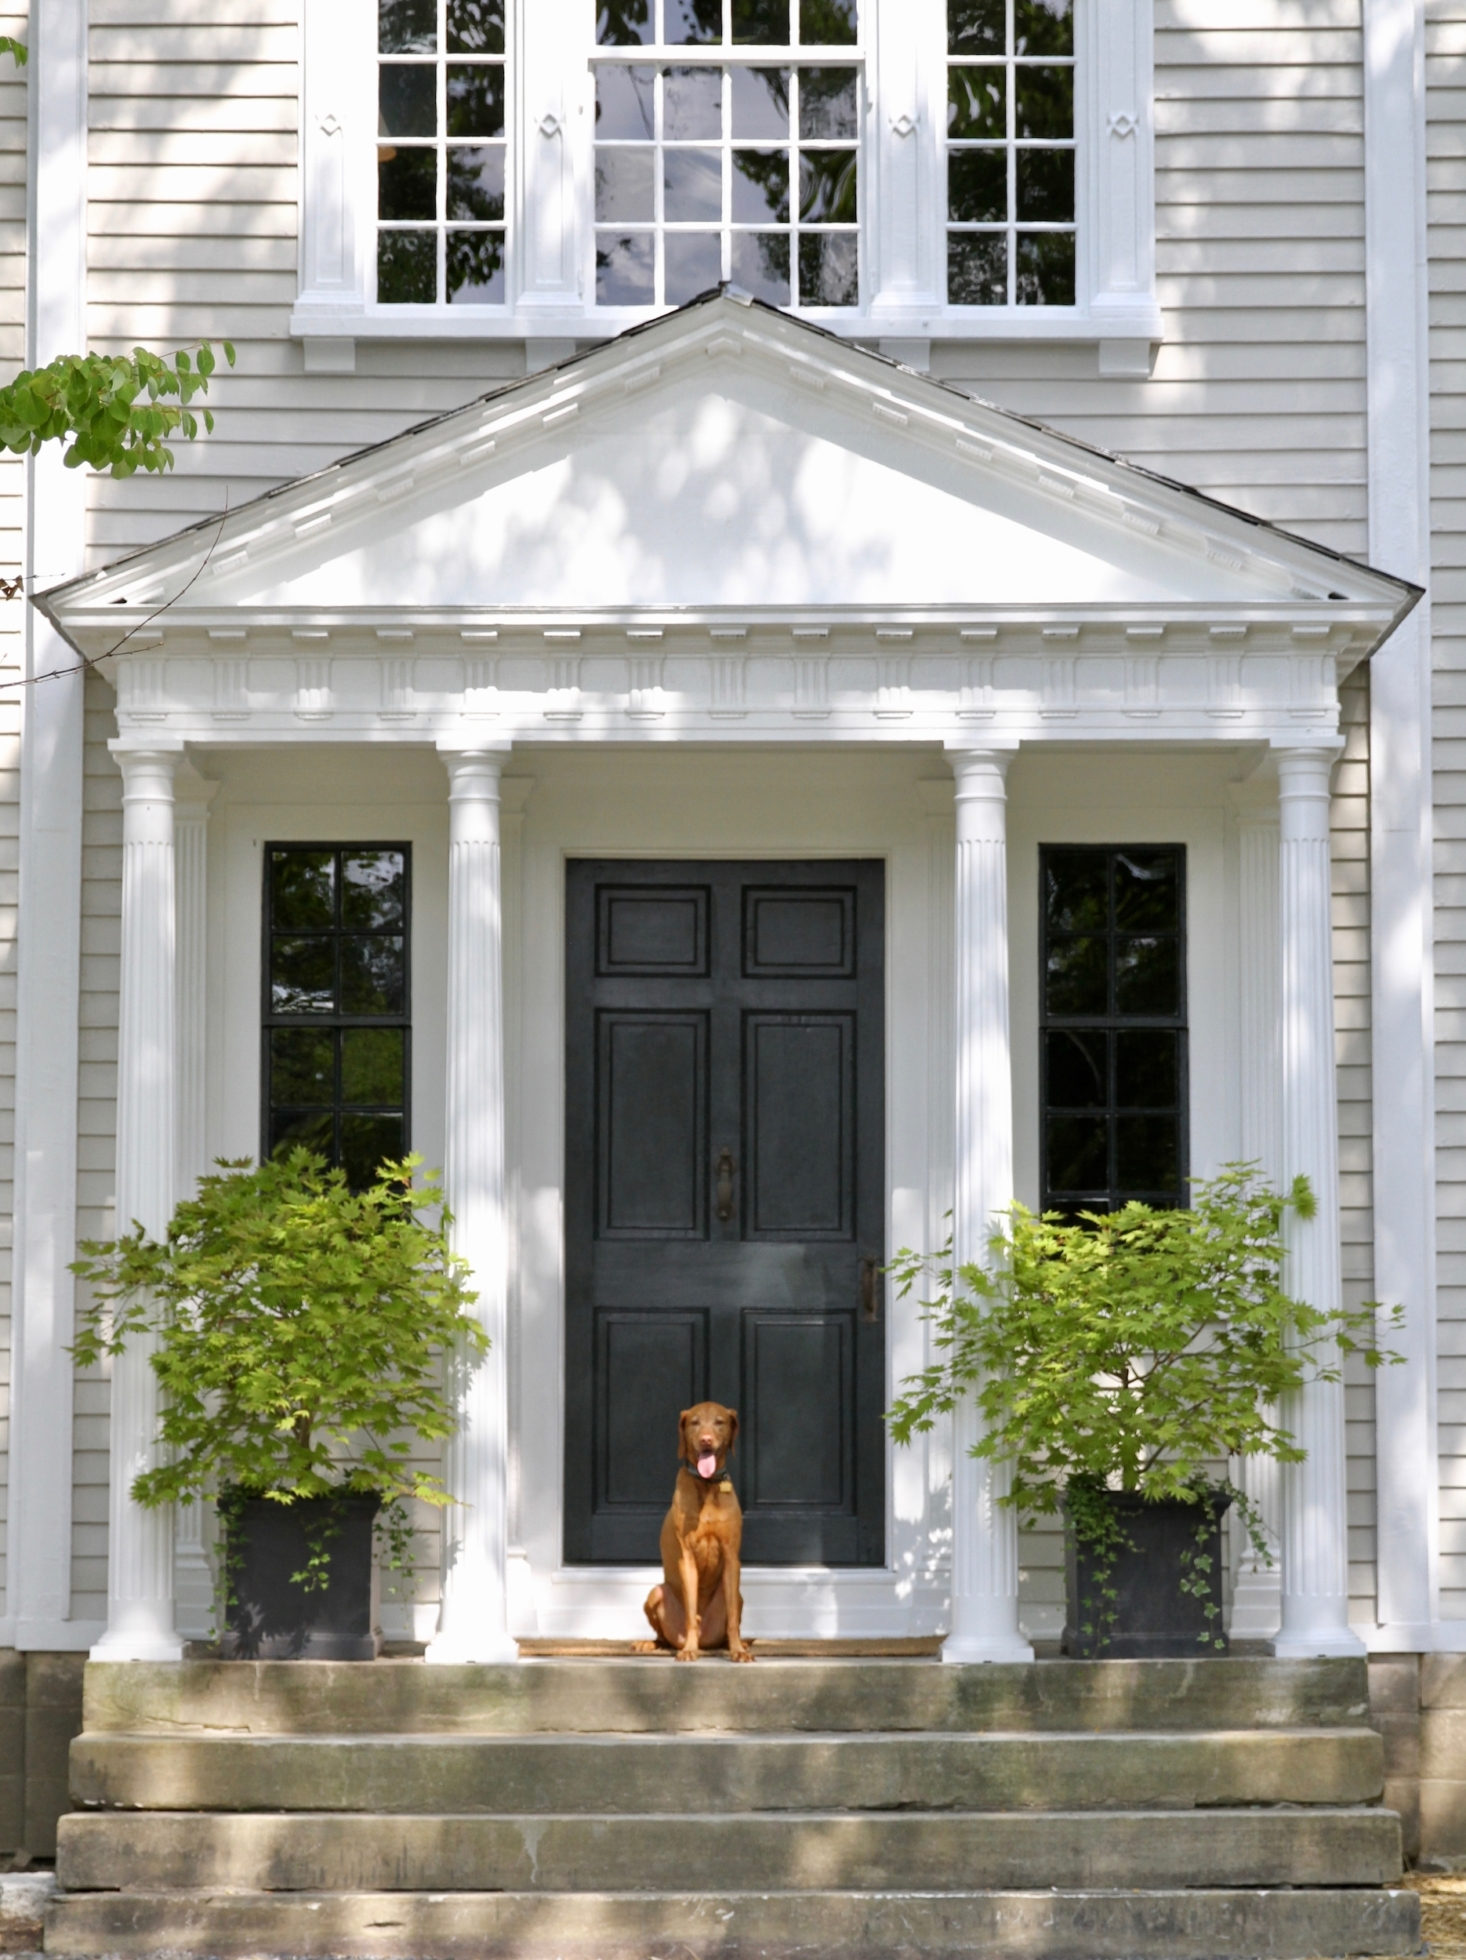 The Inn at Kenmore Hall: A Stately New Bed & Breakfast in the Berkshires